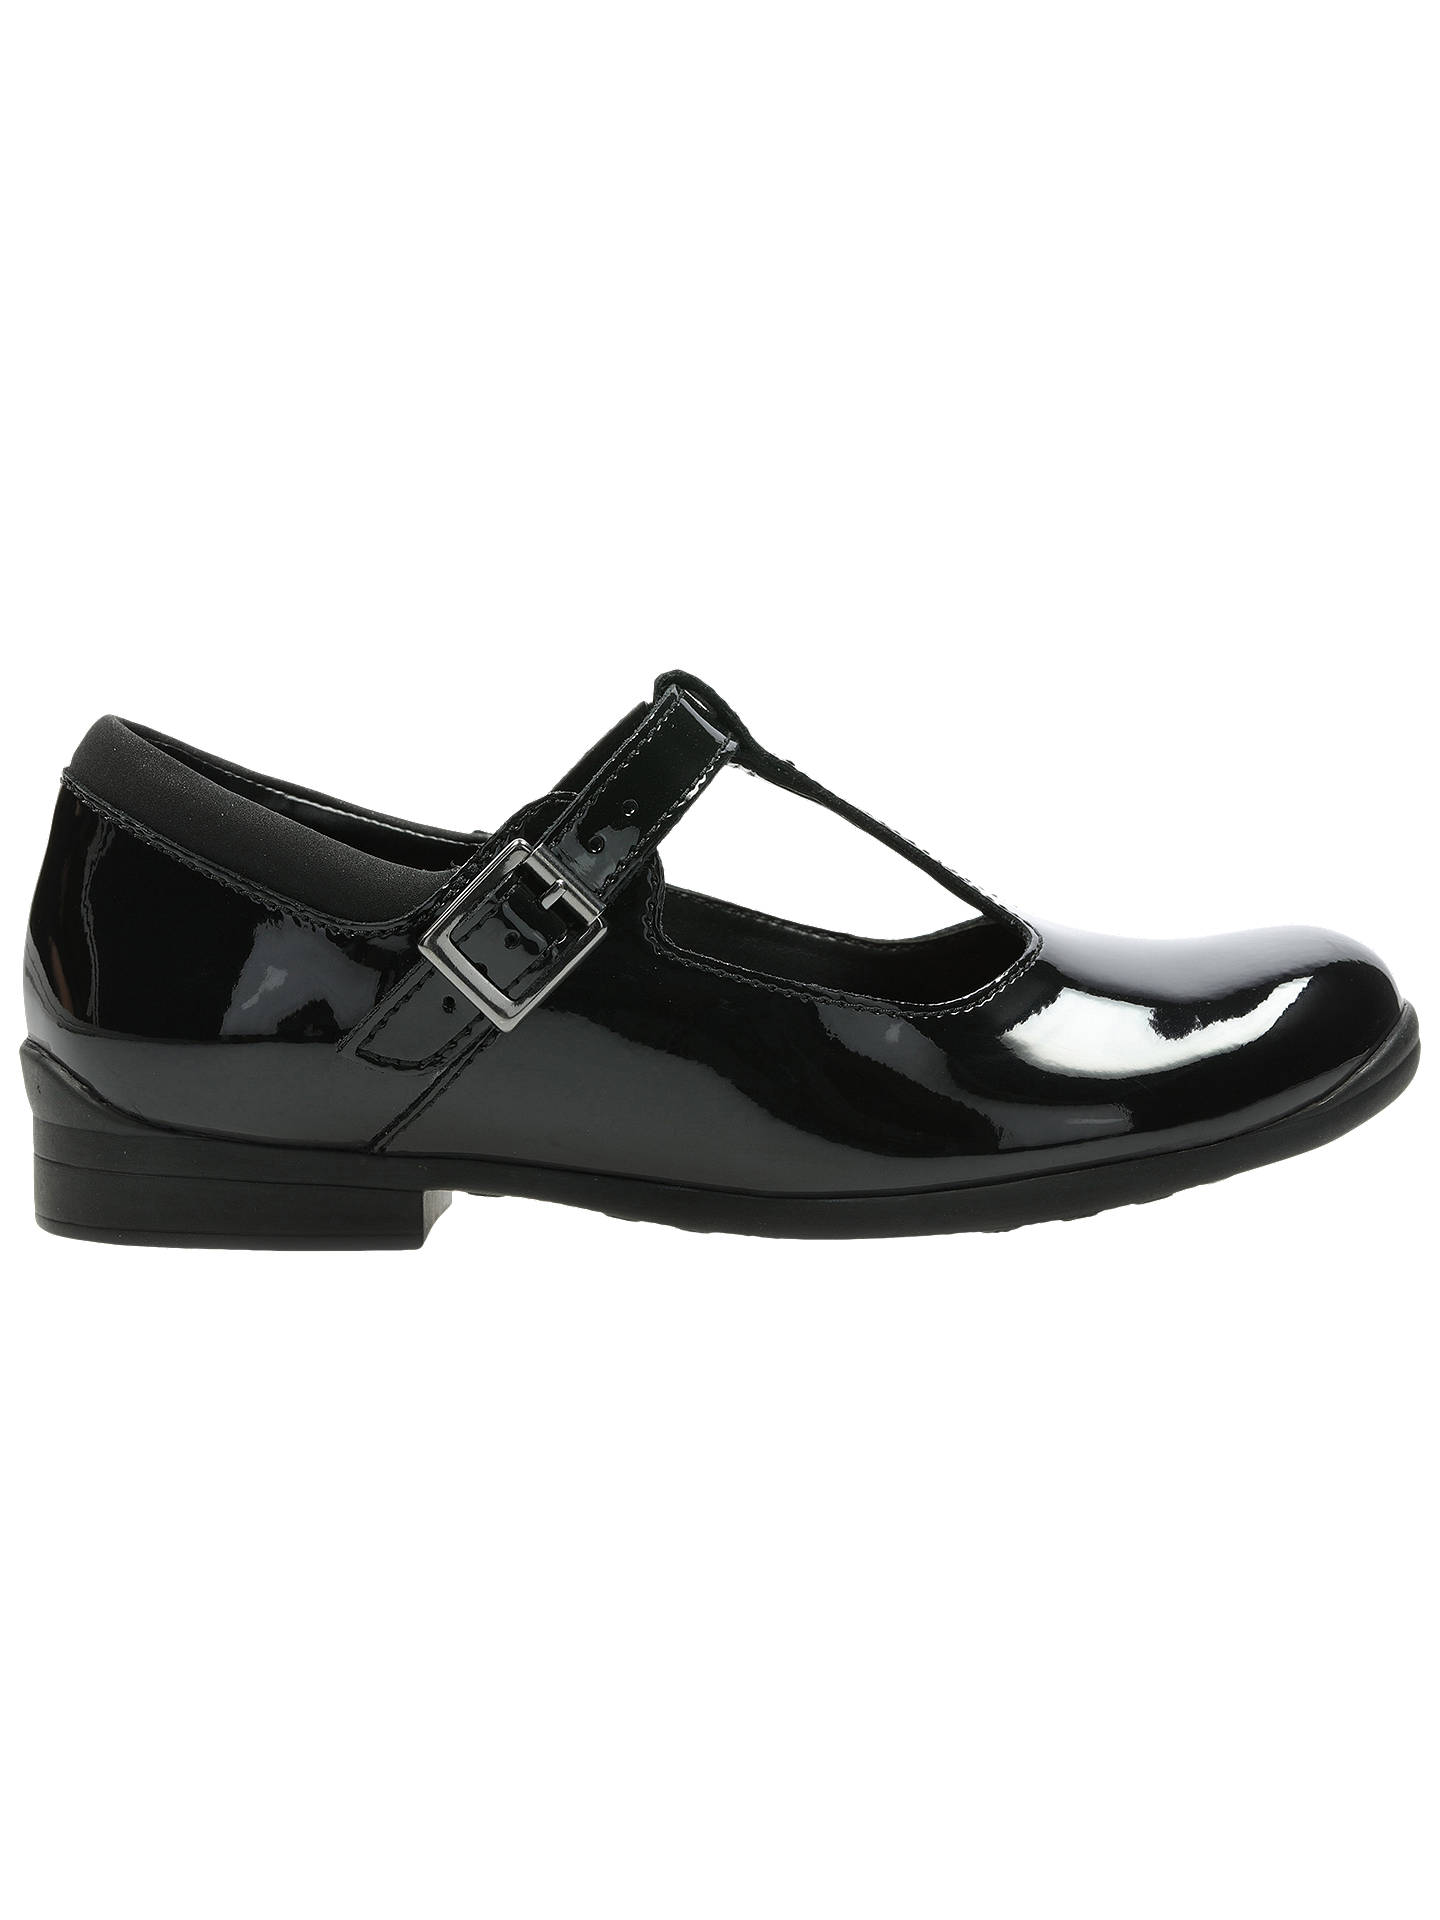 Buy Clarks Children's Mary Jane Leather School Shoes, Black, 13F Jnr Online at johnlewis.com